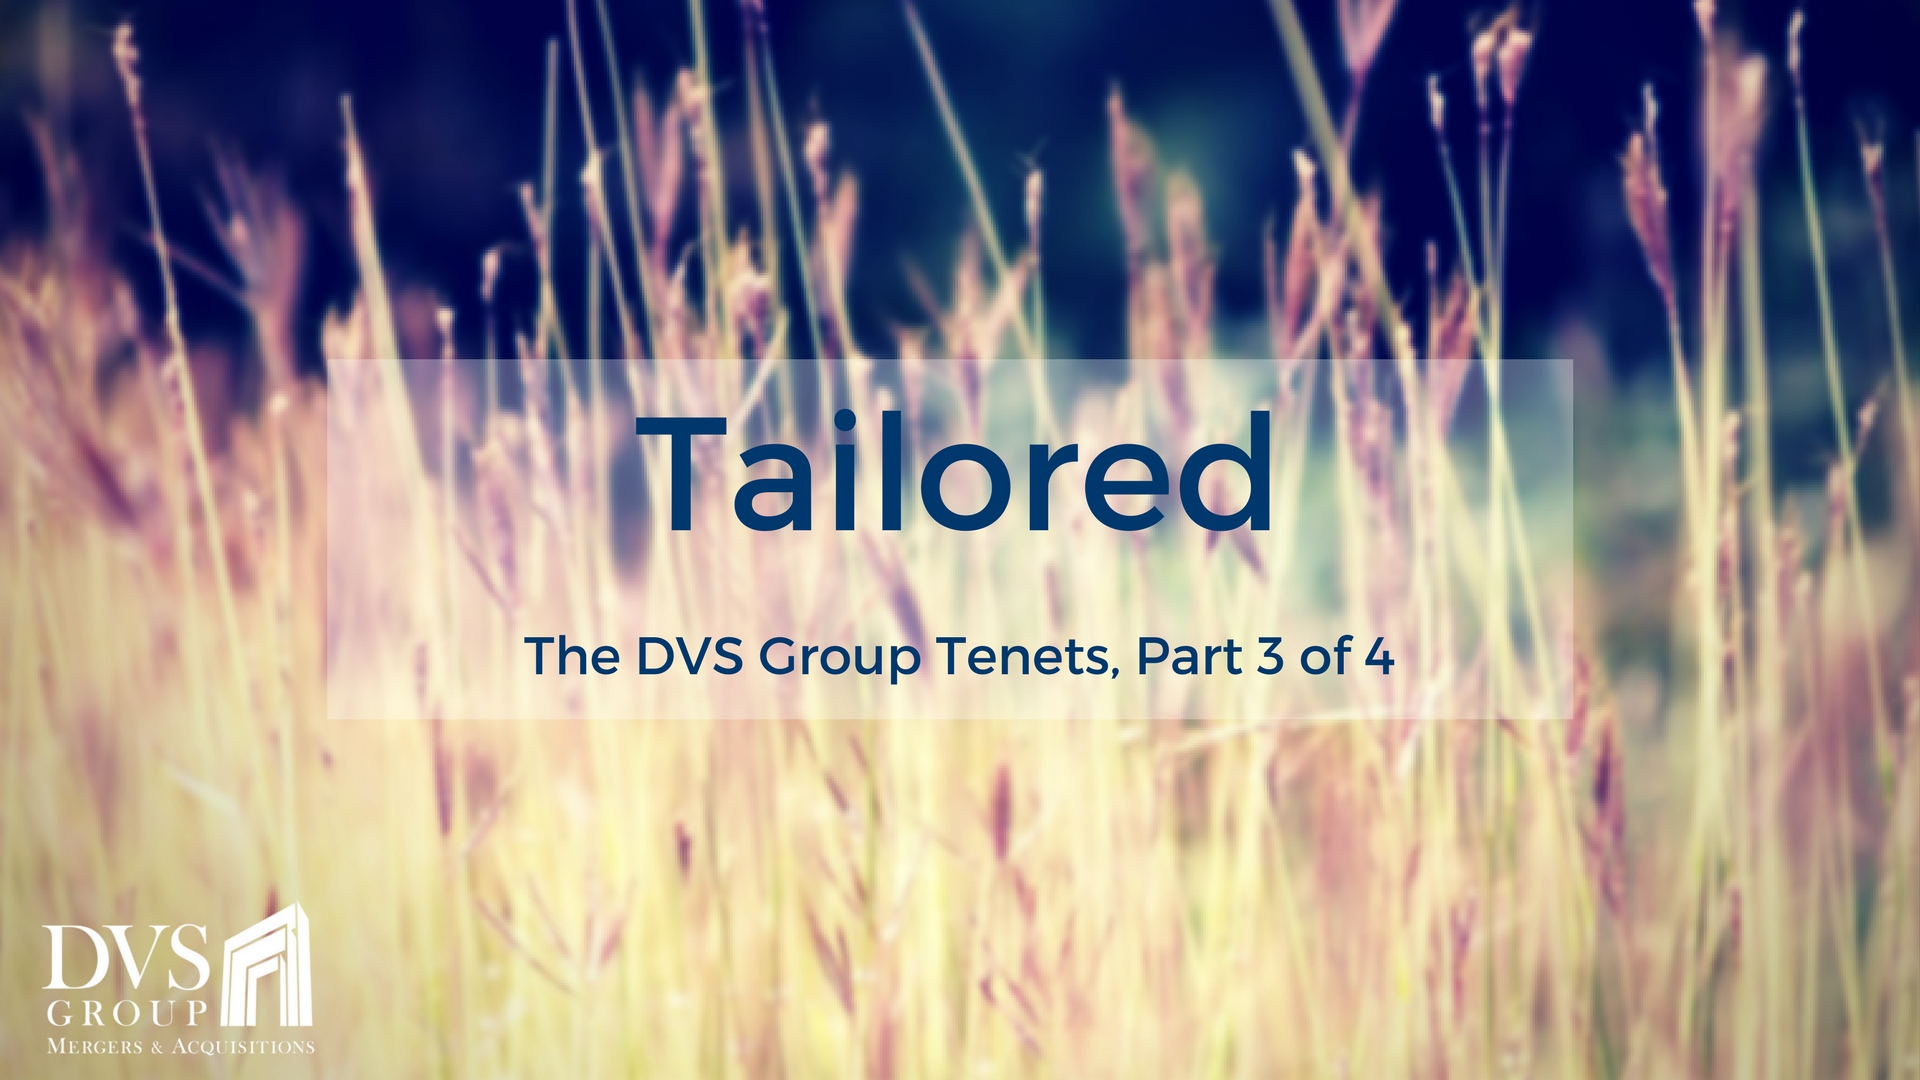 The DVS Group Tenets - Tailored